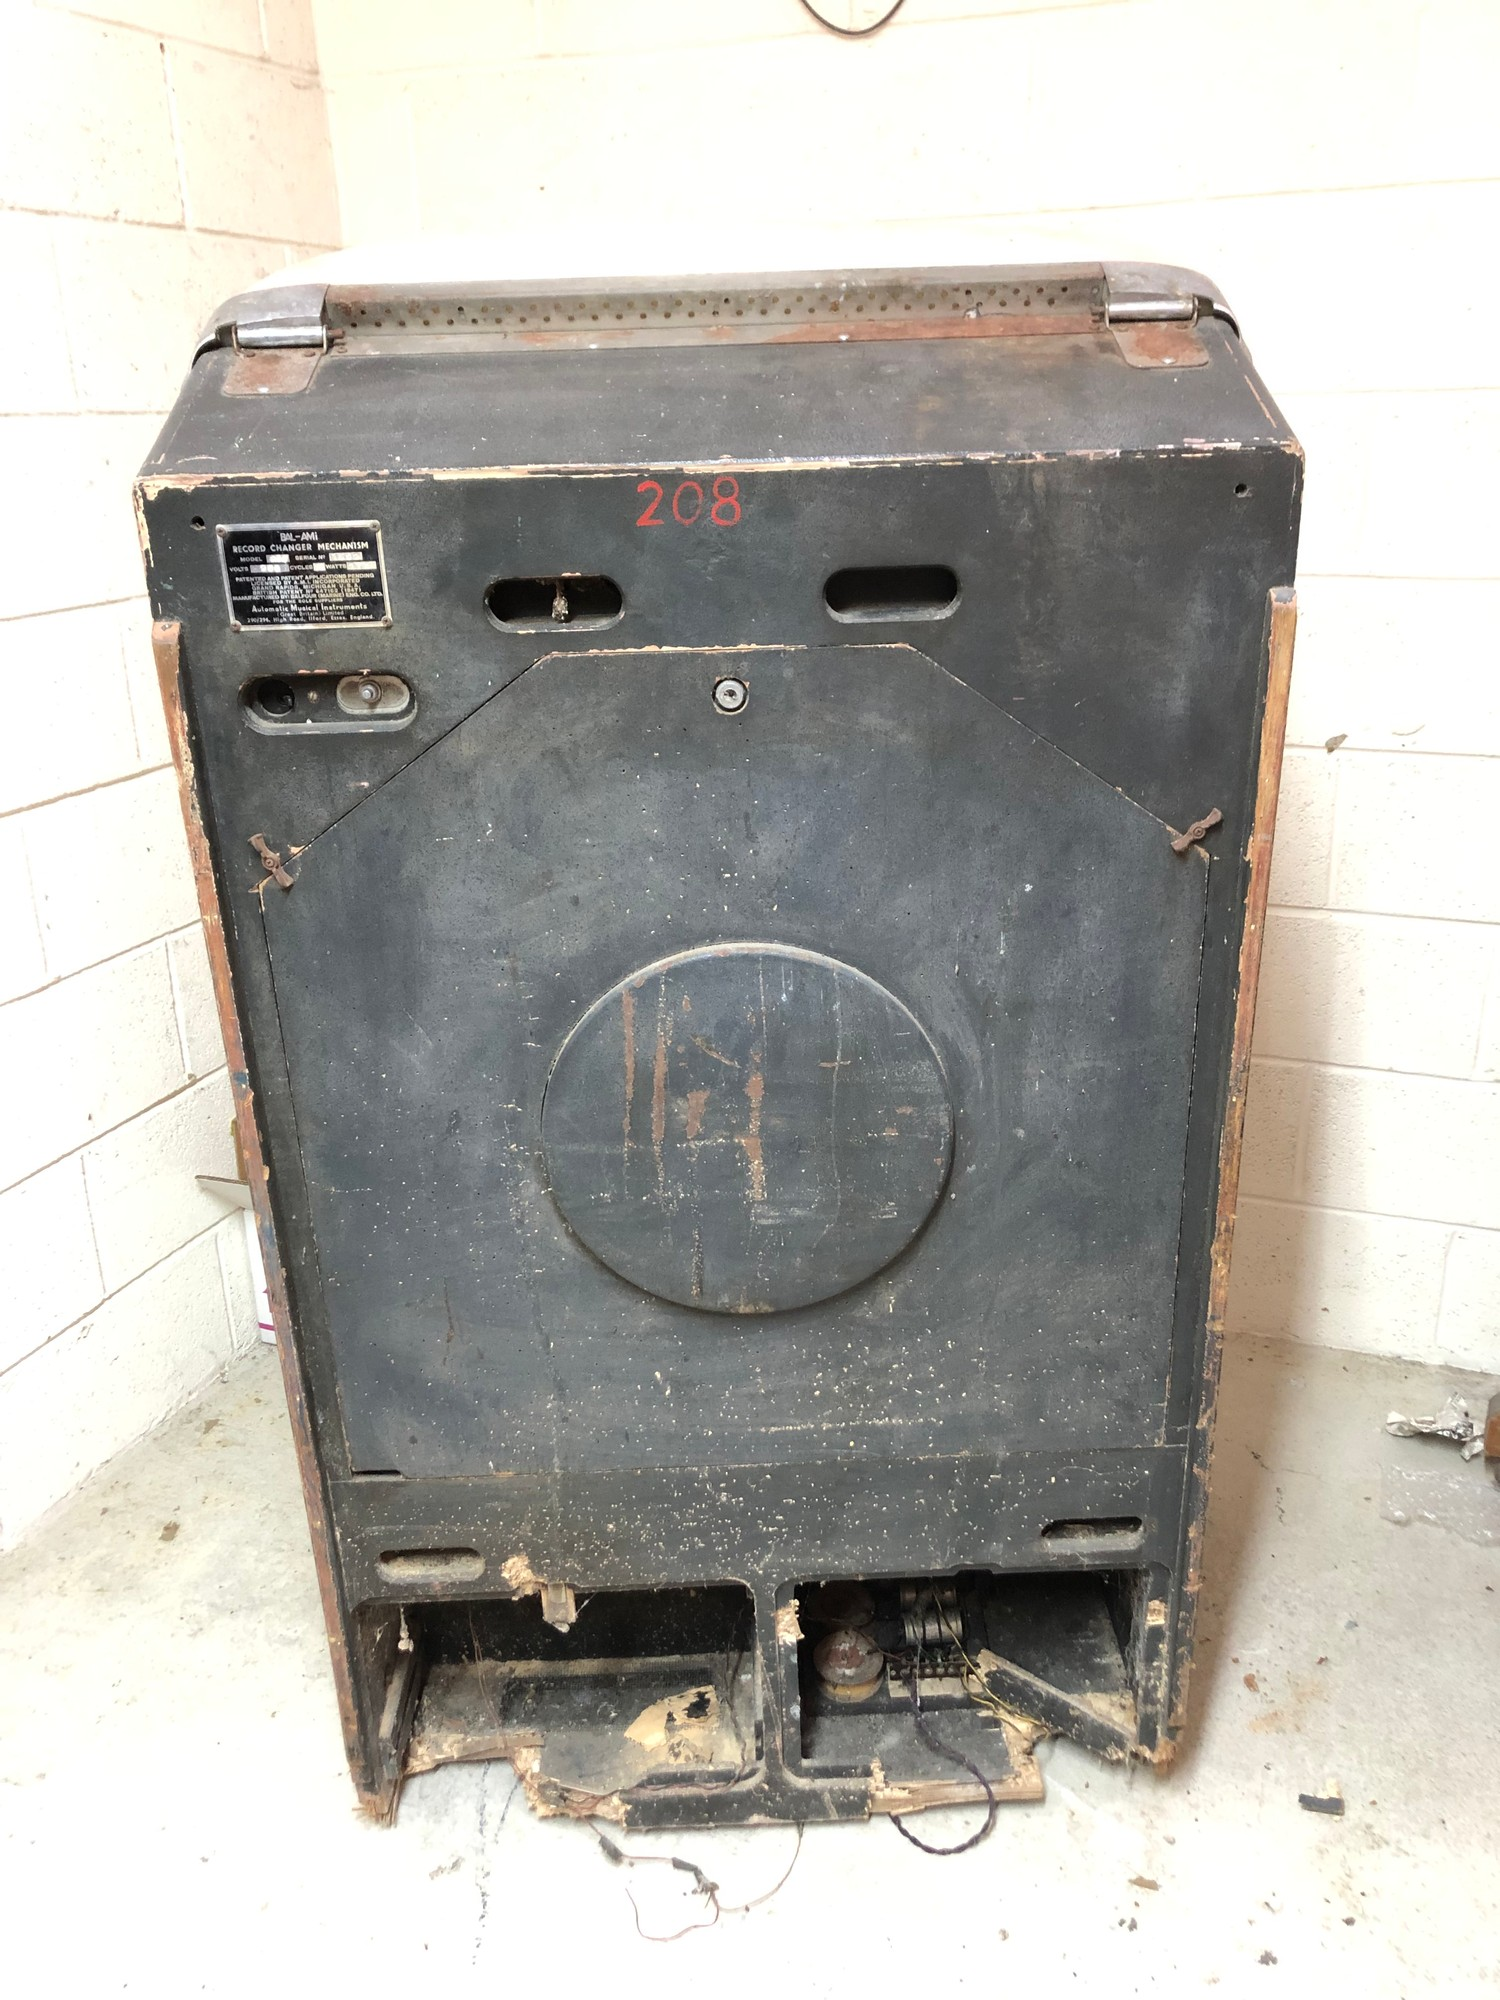 """Rare 1950s Bal-AMi 200 Jukebox in """"Barn Find"""" condition and in need of complete restoration, - Image 2 of 27"""